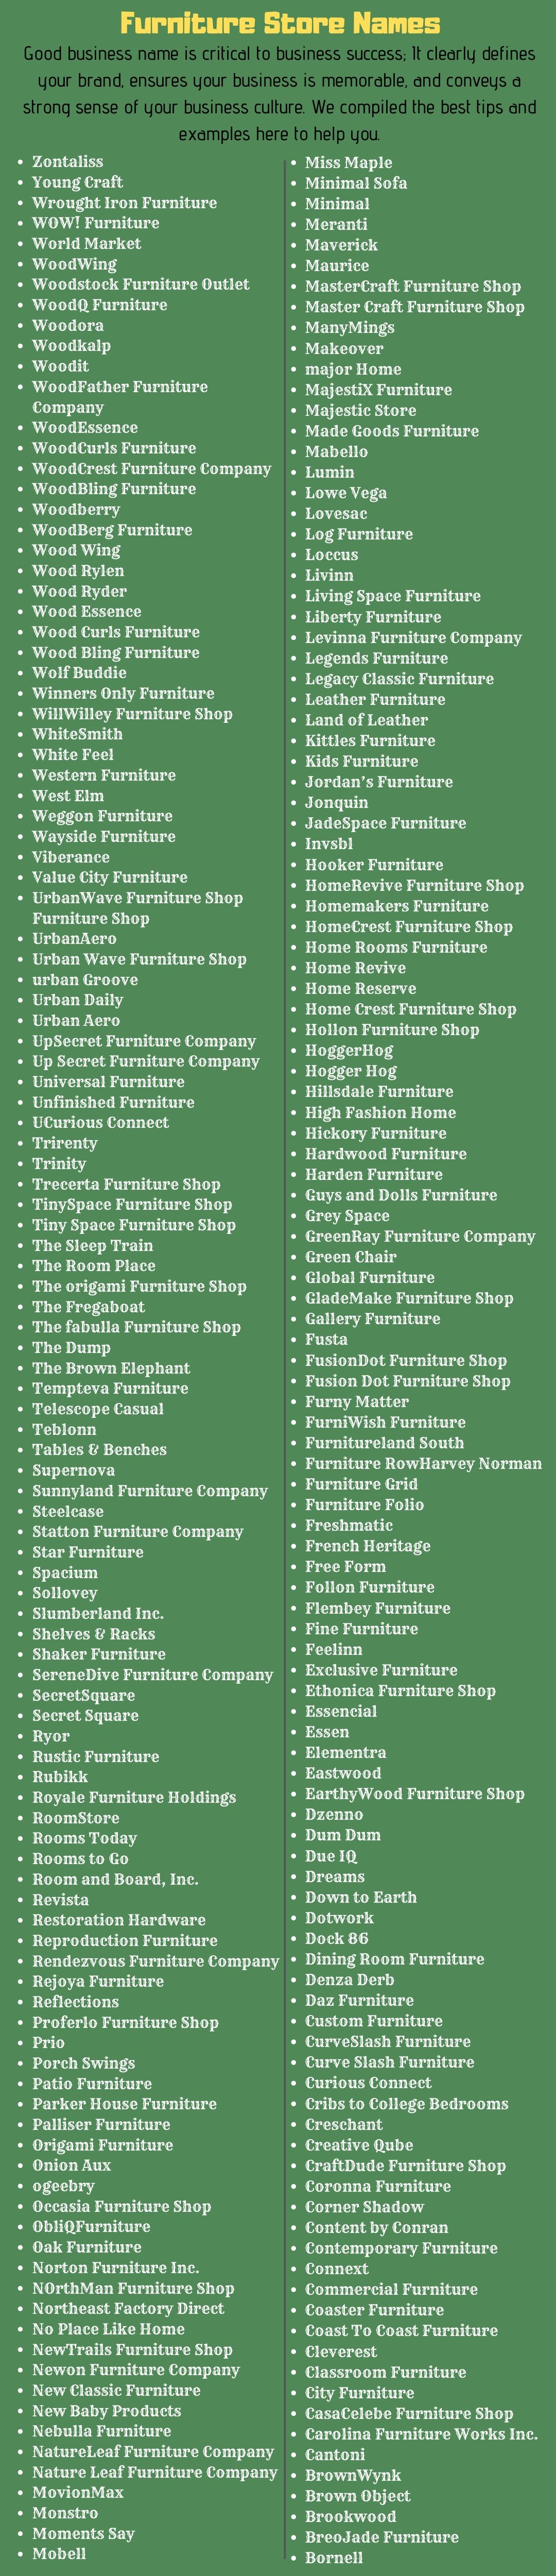 300 Attractive Name Ideas For Furniture Business